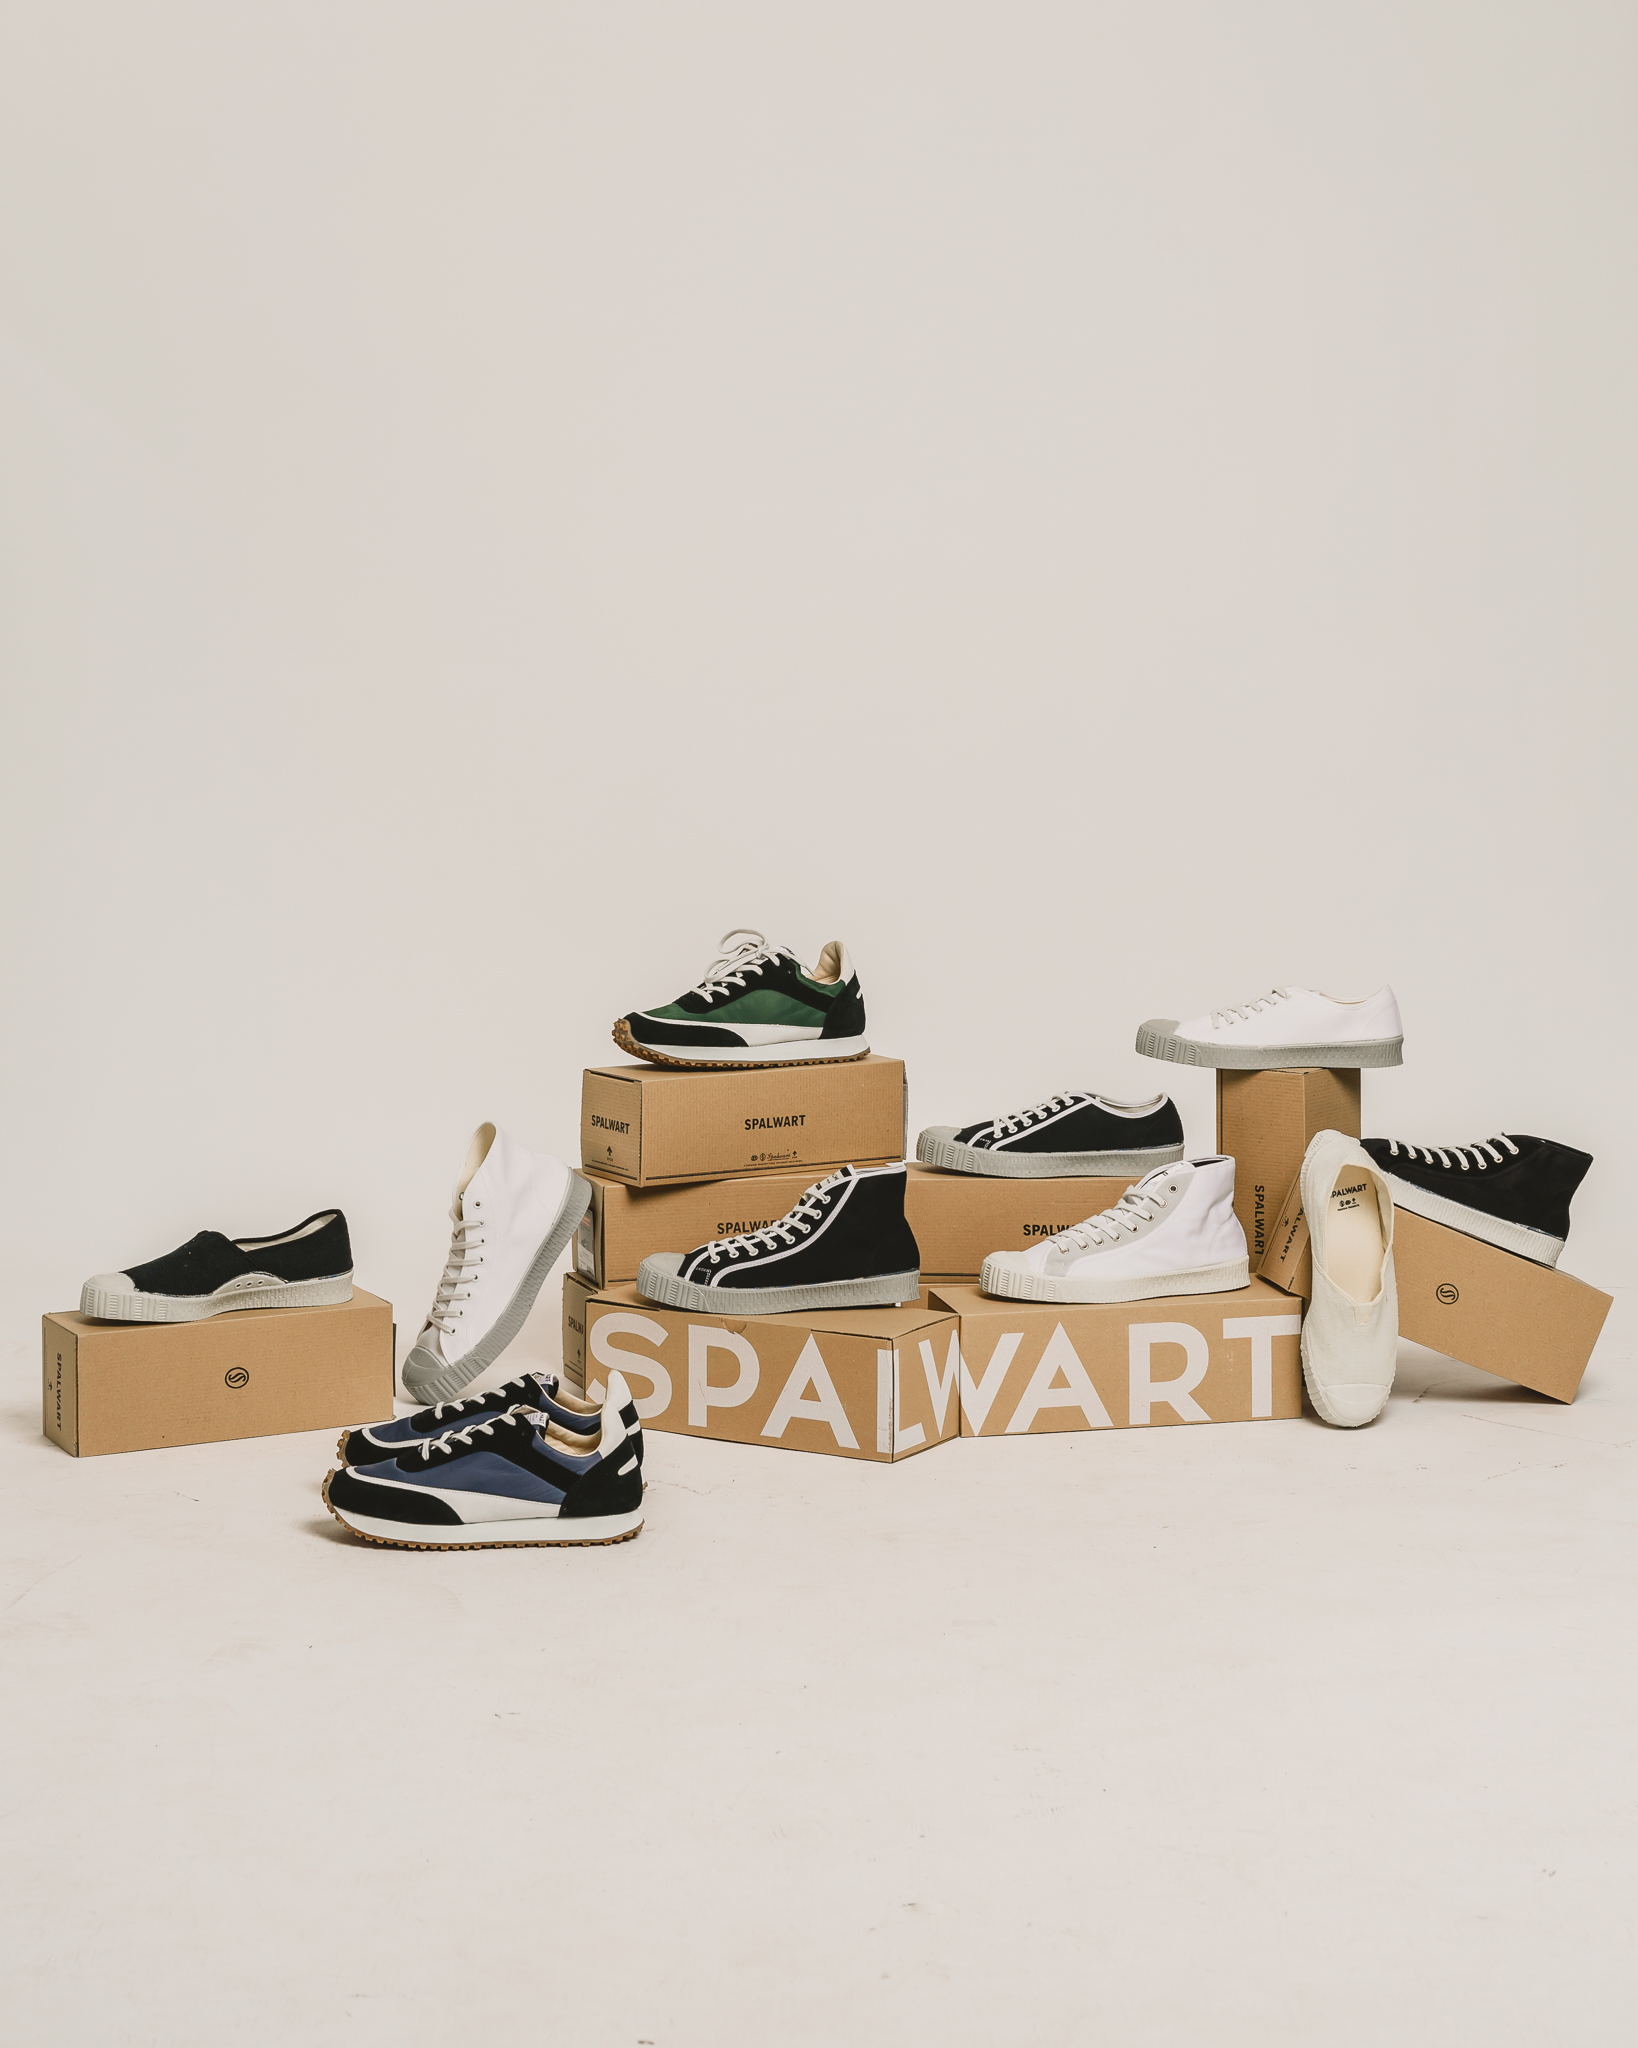 NEW ARRIVAL : SPALWART